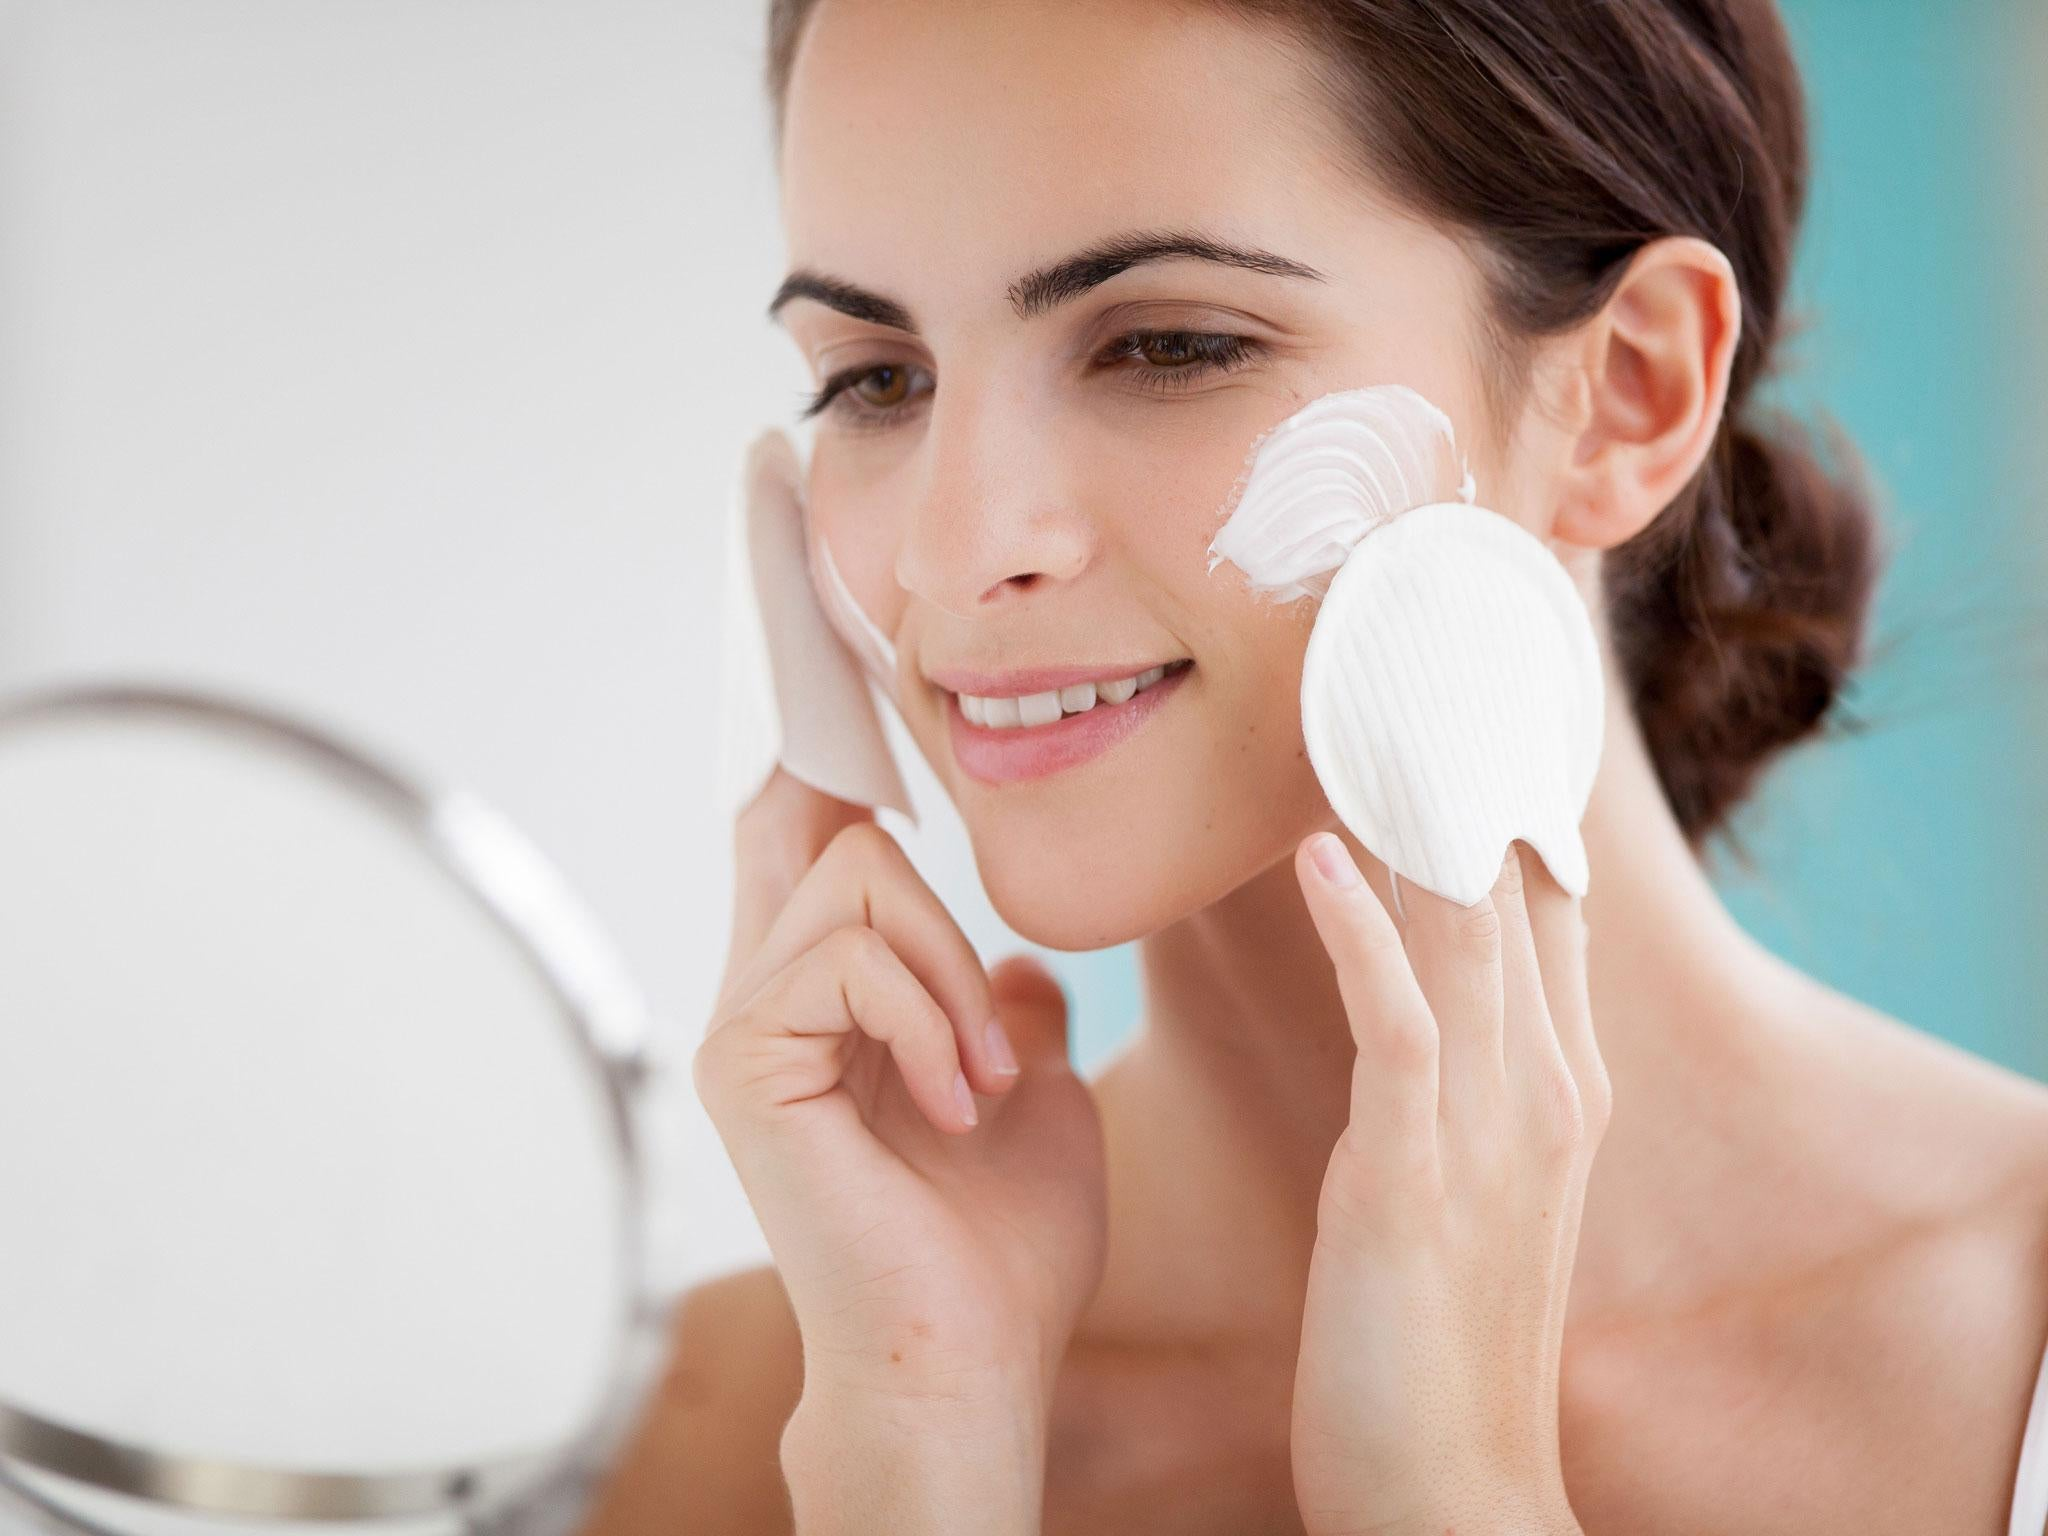 10 best make-up removers